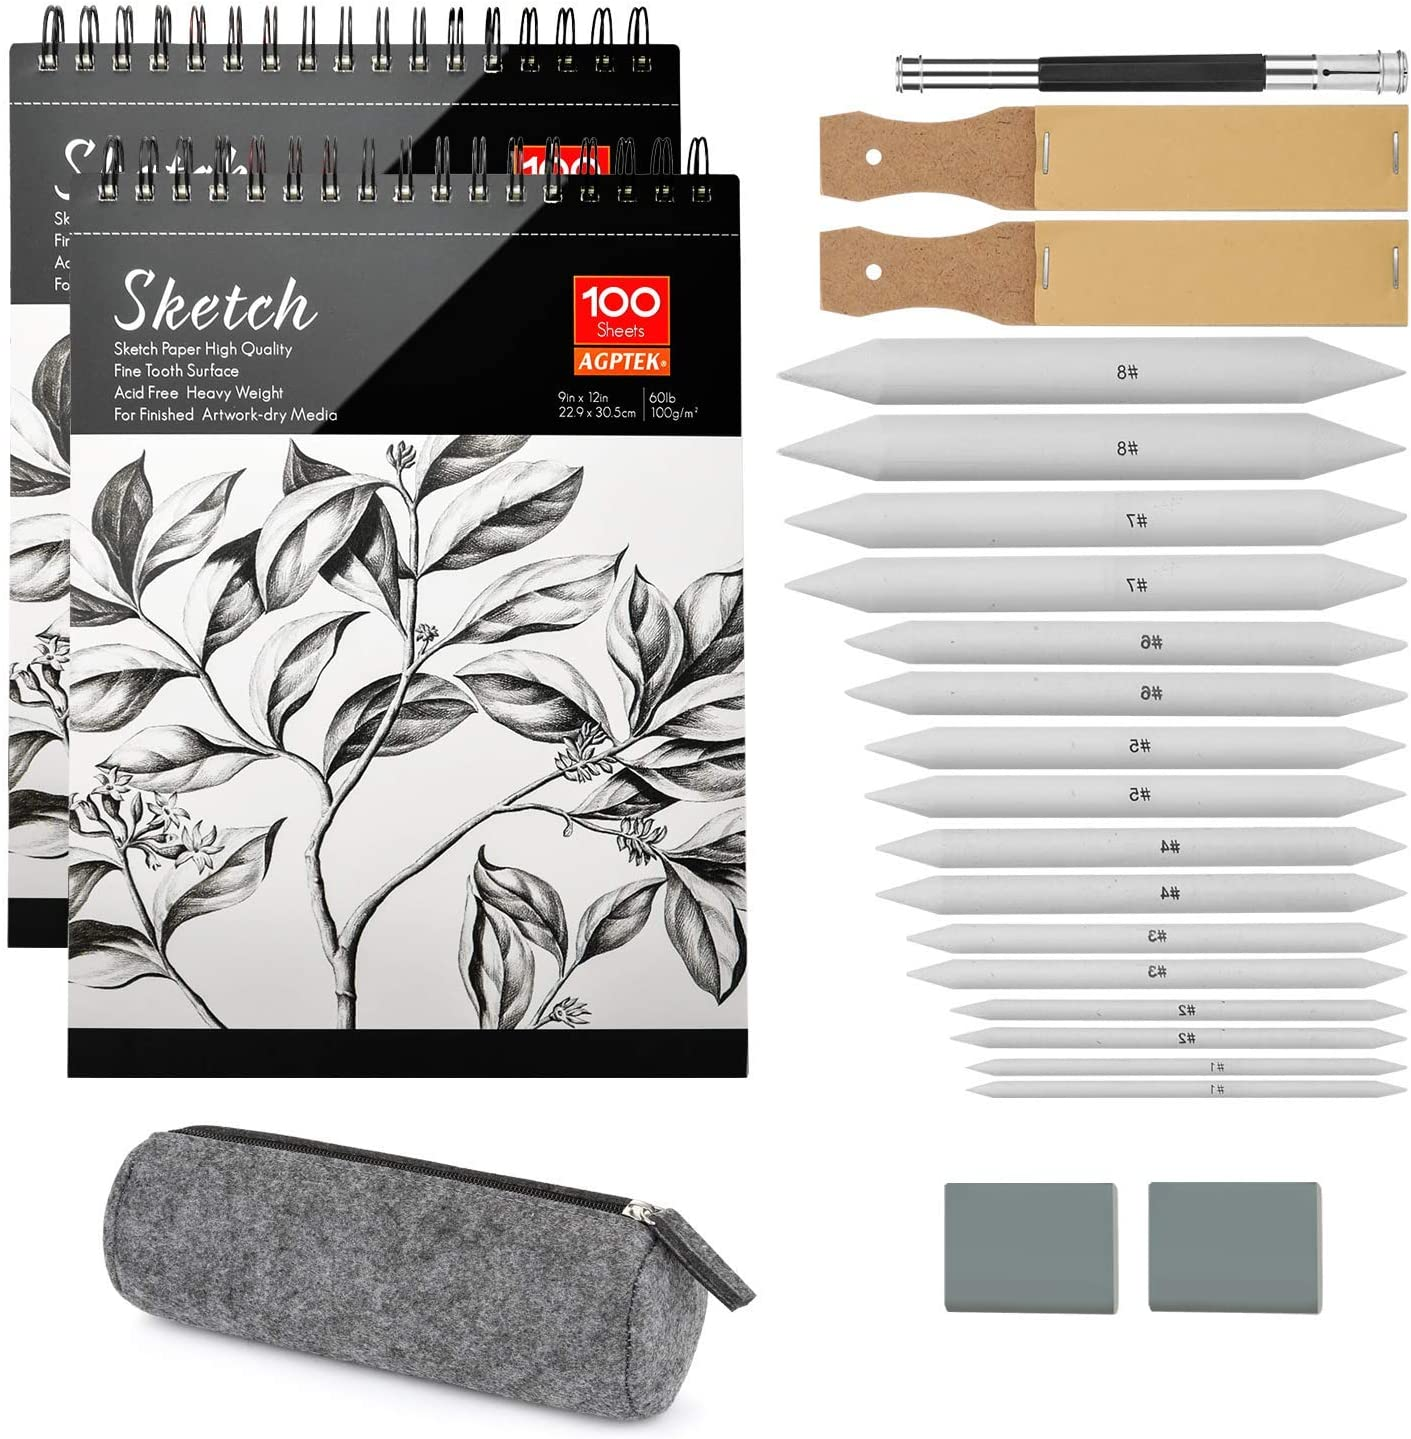 Sketch Drawing Tools Bundle with Sketch Books